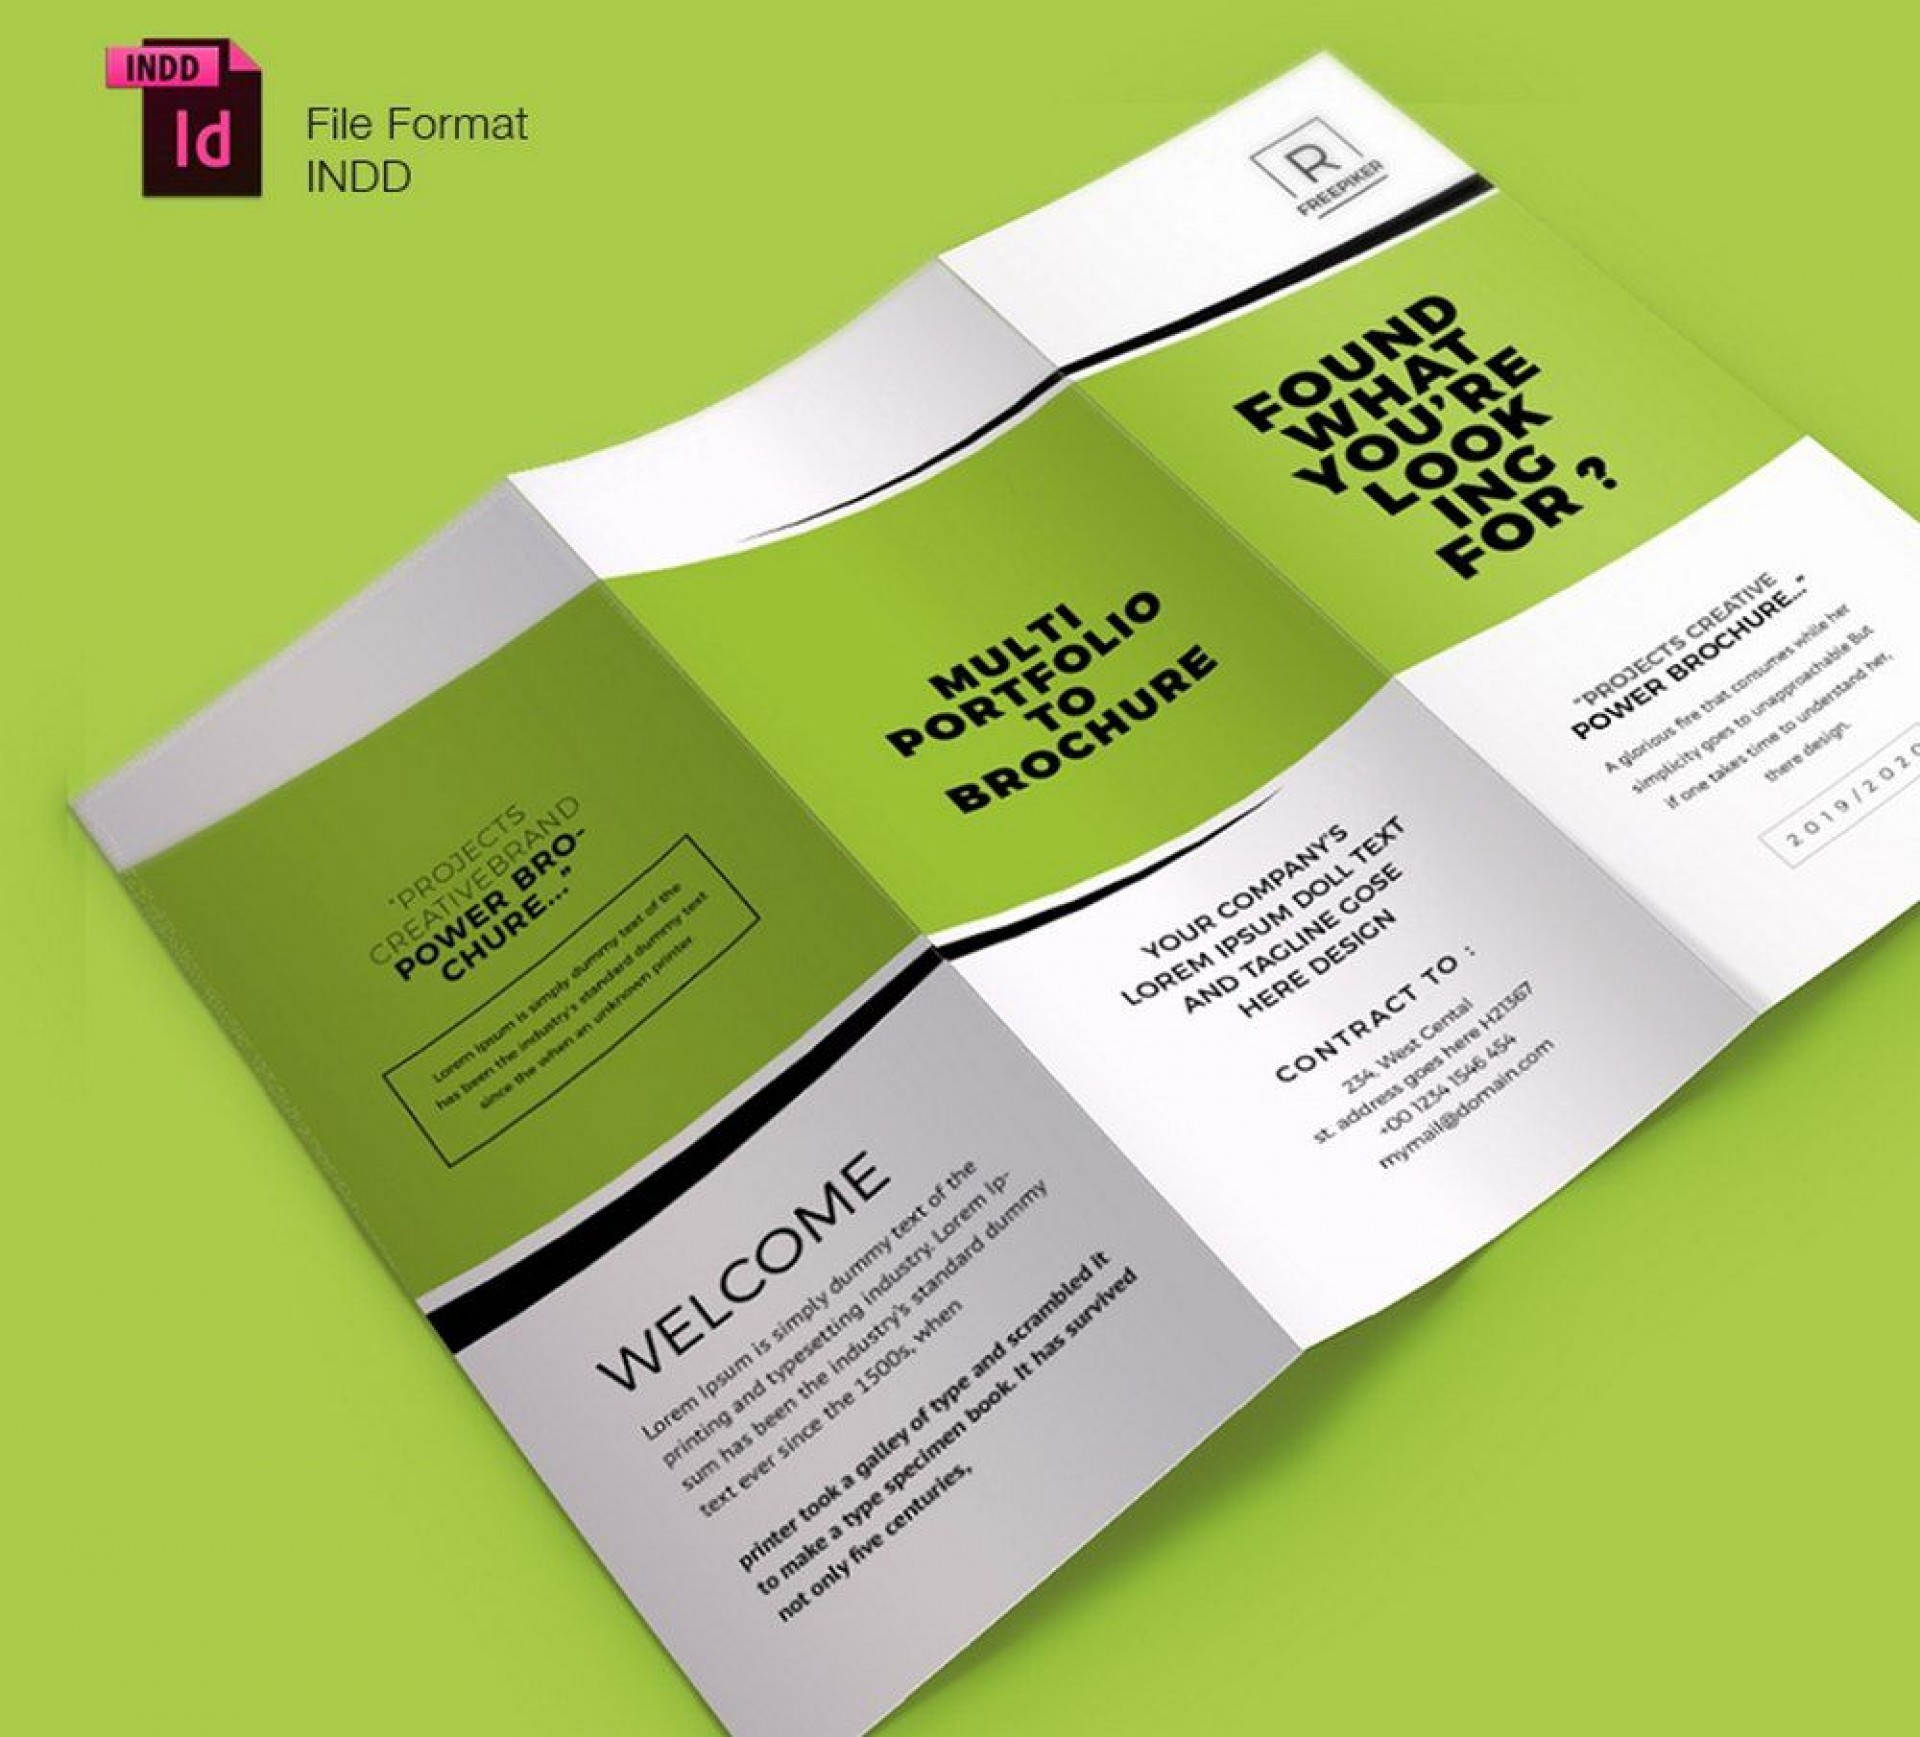 005 Marvelou Tri Fold Brochure Indesign Template Photo  Free Adobe1920